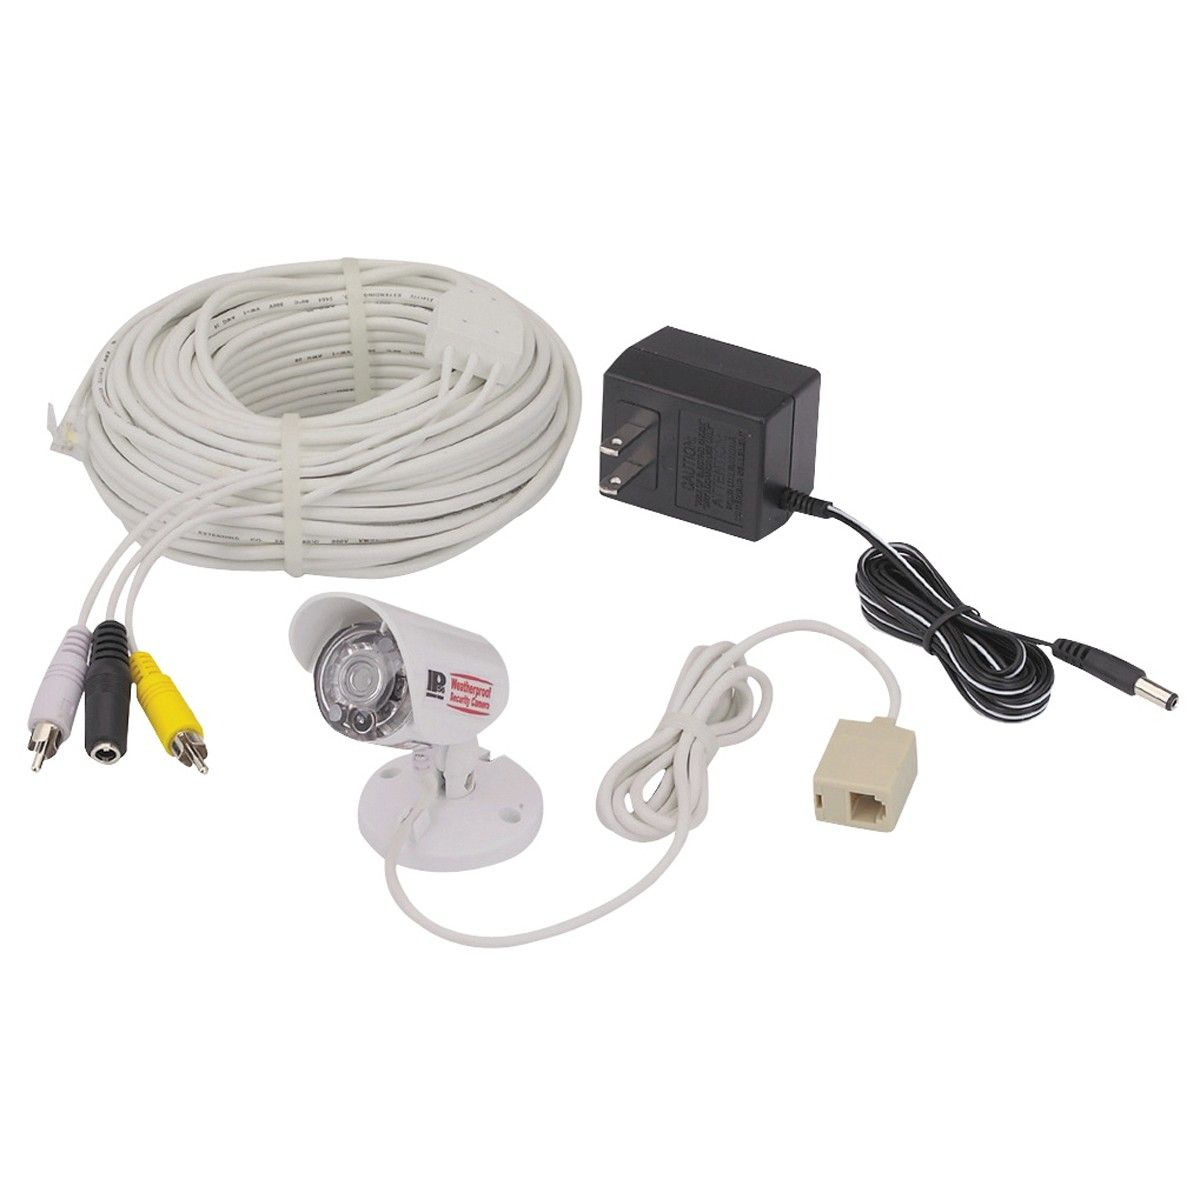 Harbor Freight Security Camera 47546 Wiring-Diagram Are You - Usb Wiring Diagram For Security Camera